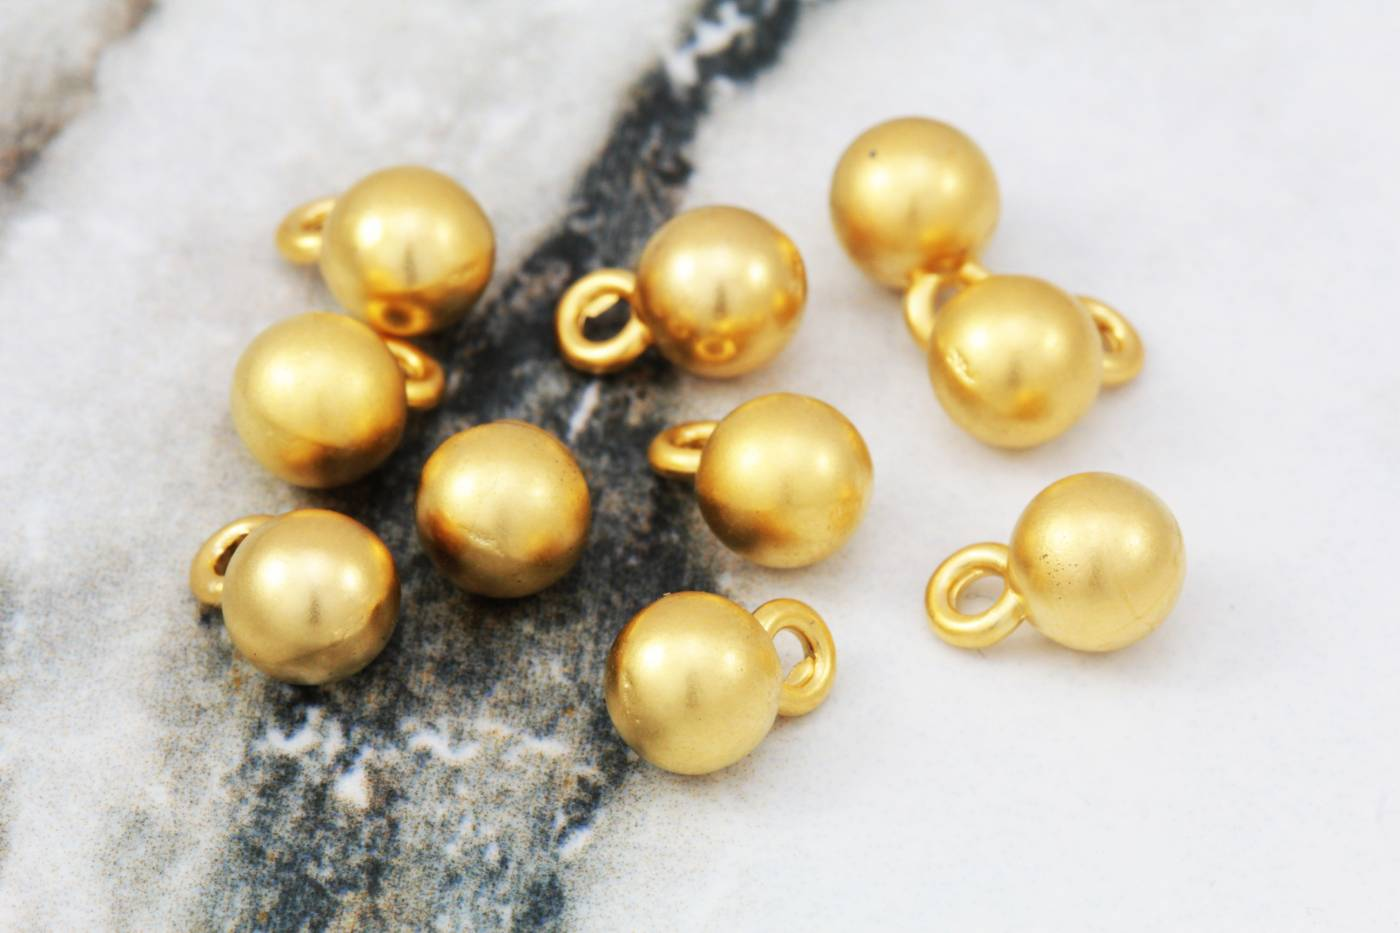 gold-plated-metal-round-ball-pendants.jpg